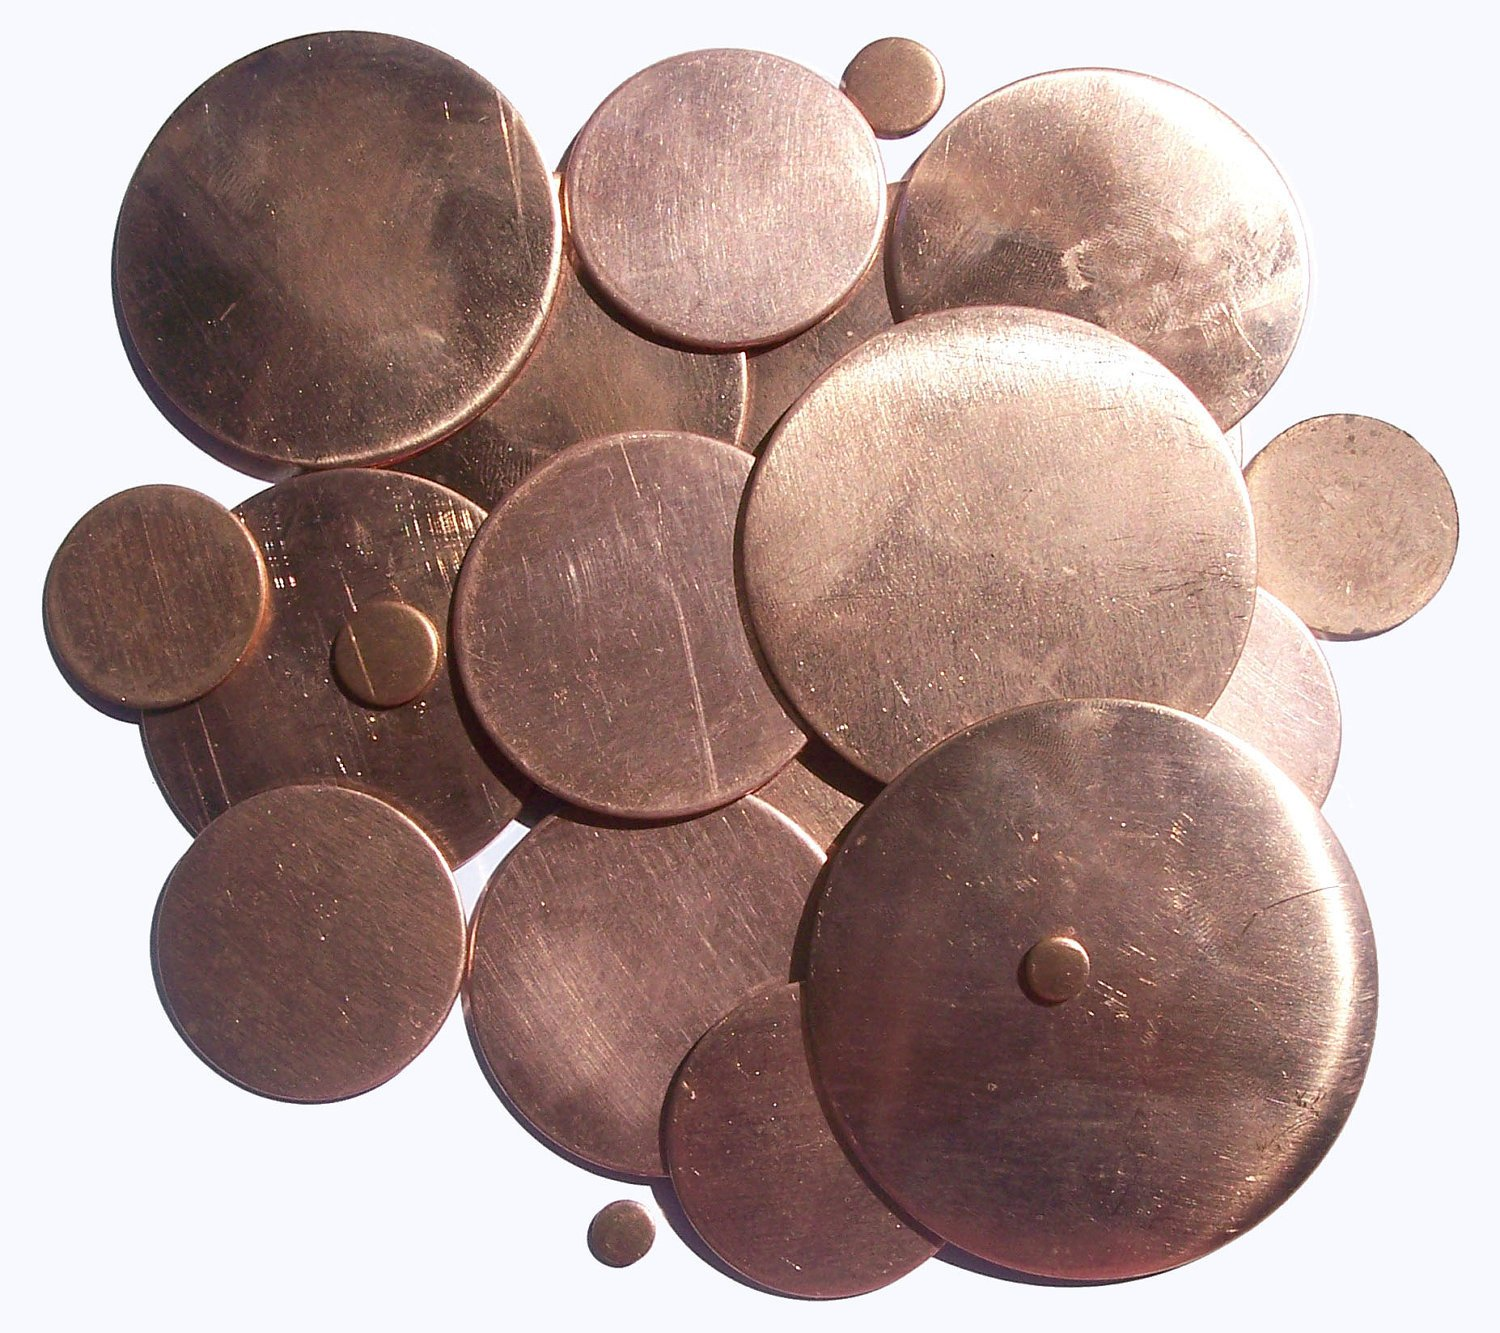 Copper Disc Round Blank 20mm 22G Enameling Stamping Texturing Blanks - Jewelry Supplies